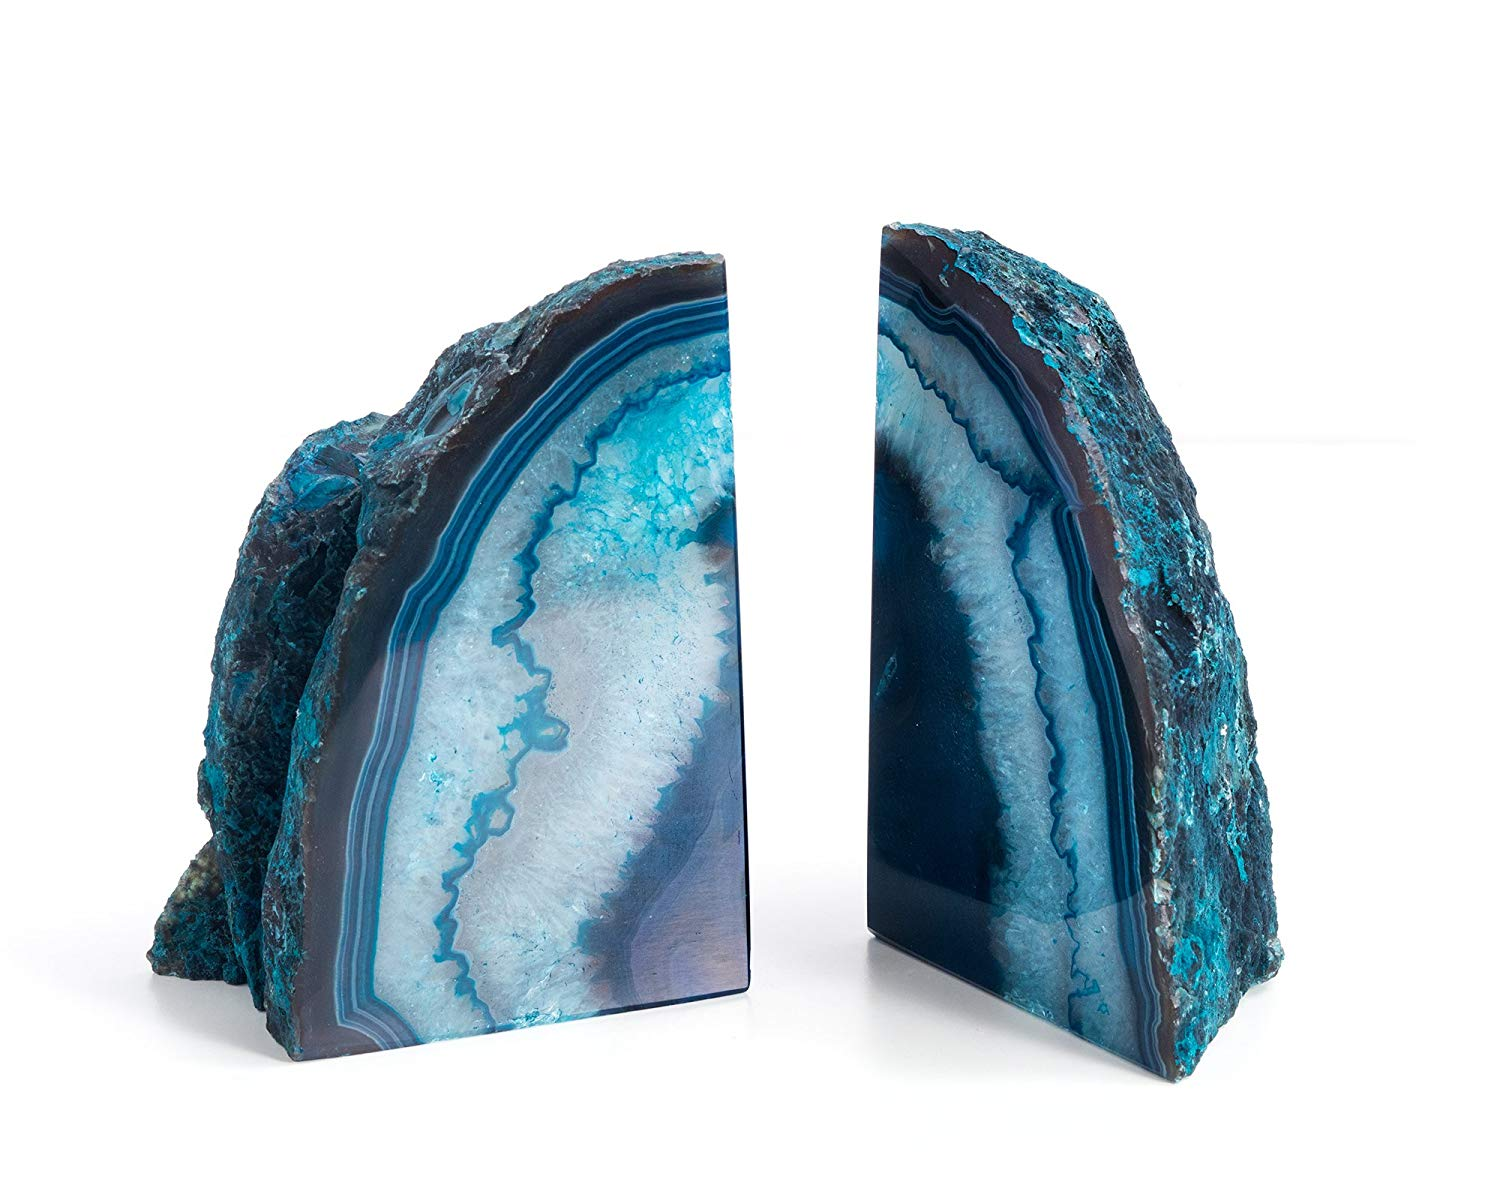 Geode Agate Book Ends for Office Decor and Home - BohoEntice